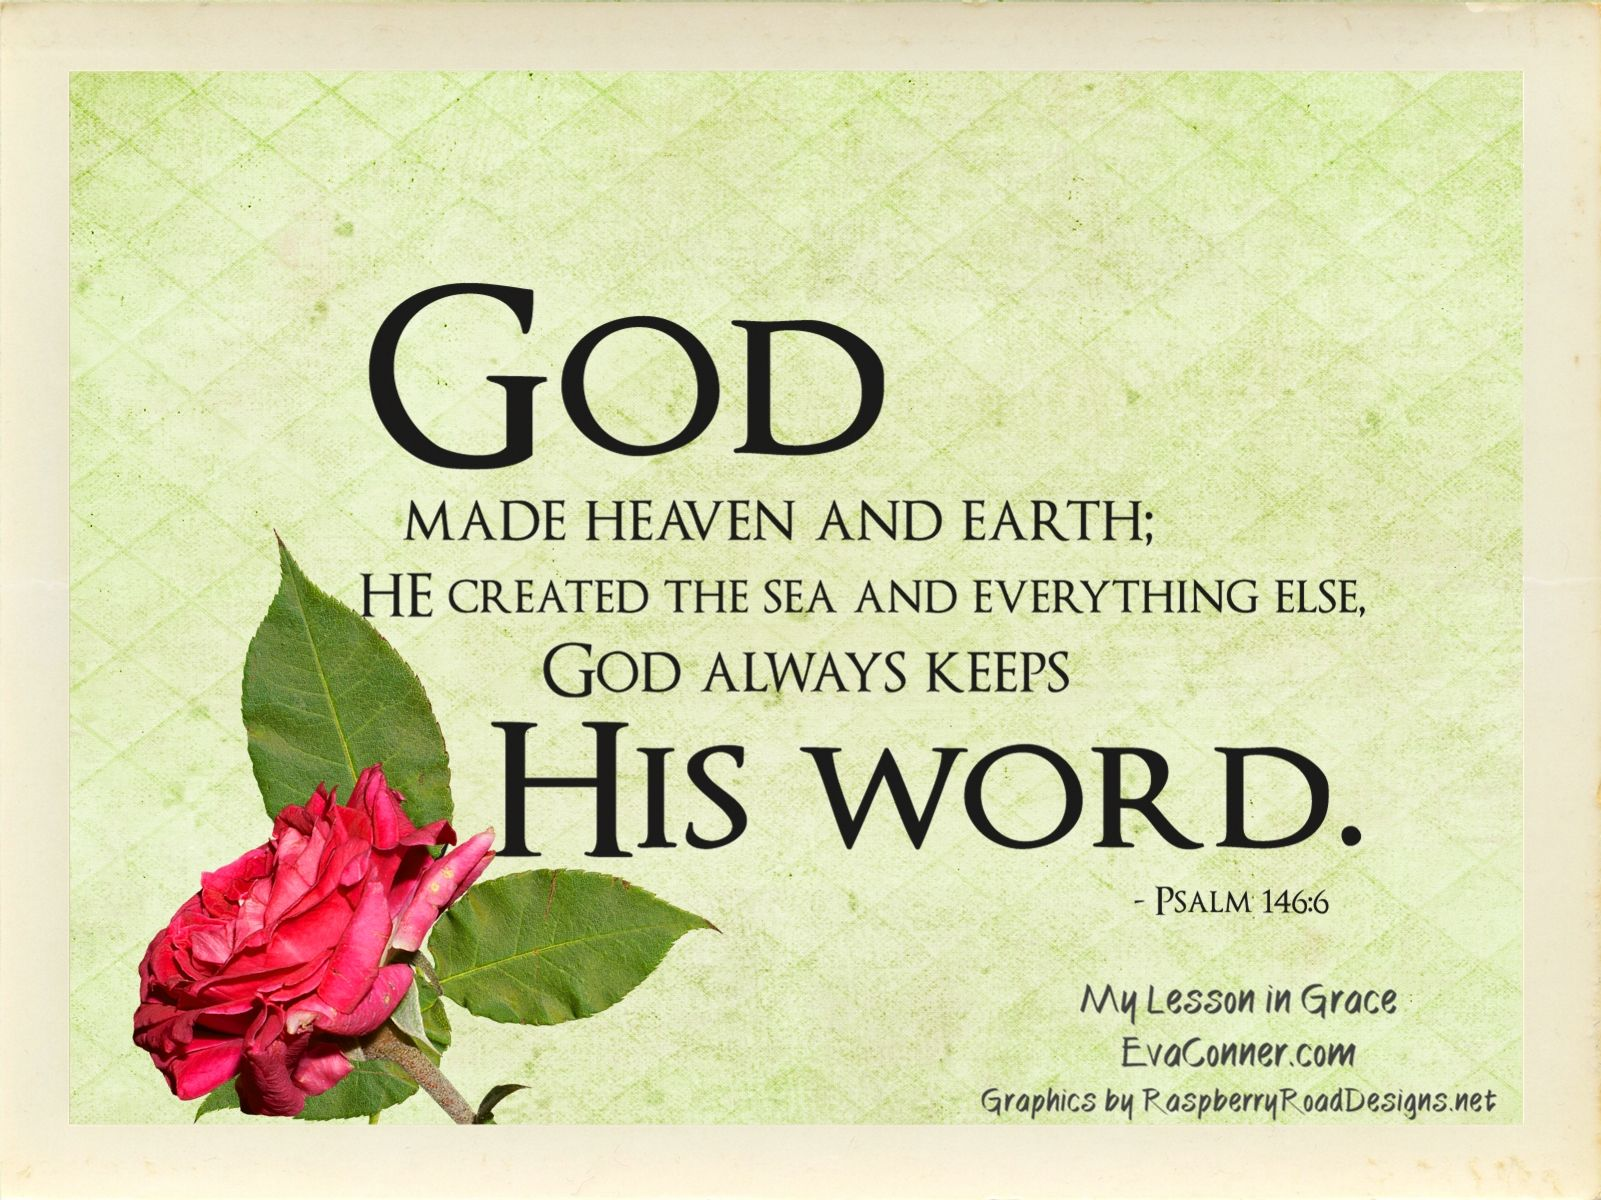 Blessing Quotes Bible: Bible Verses On Blessings - Google Search